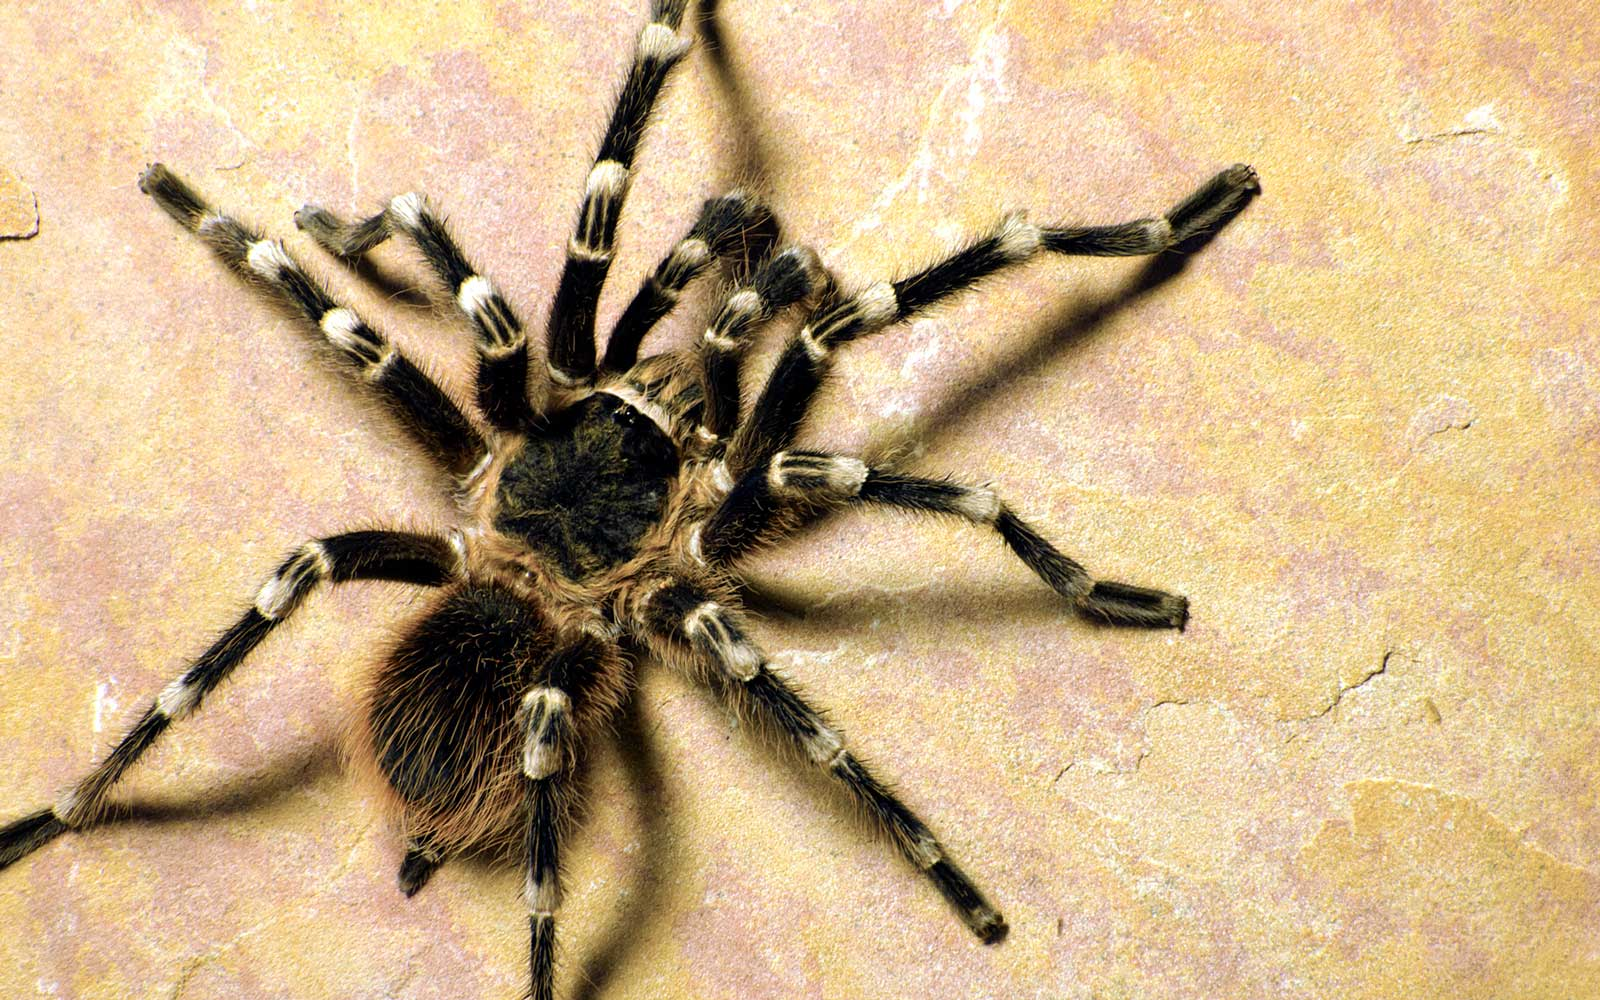 Man Caught Attempting to Smuggle Dozens of Tarantulas in Luggage